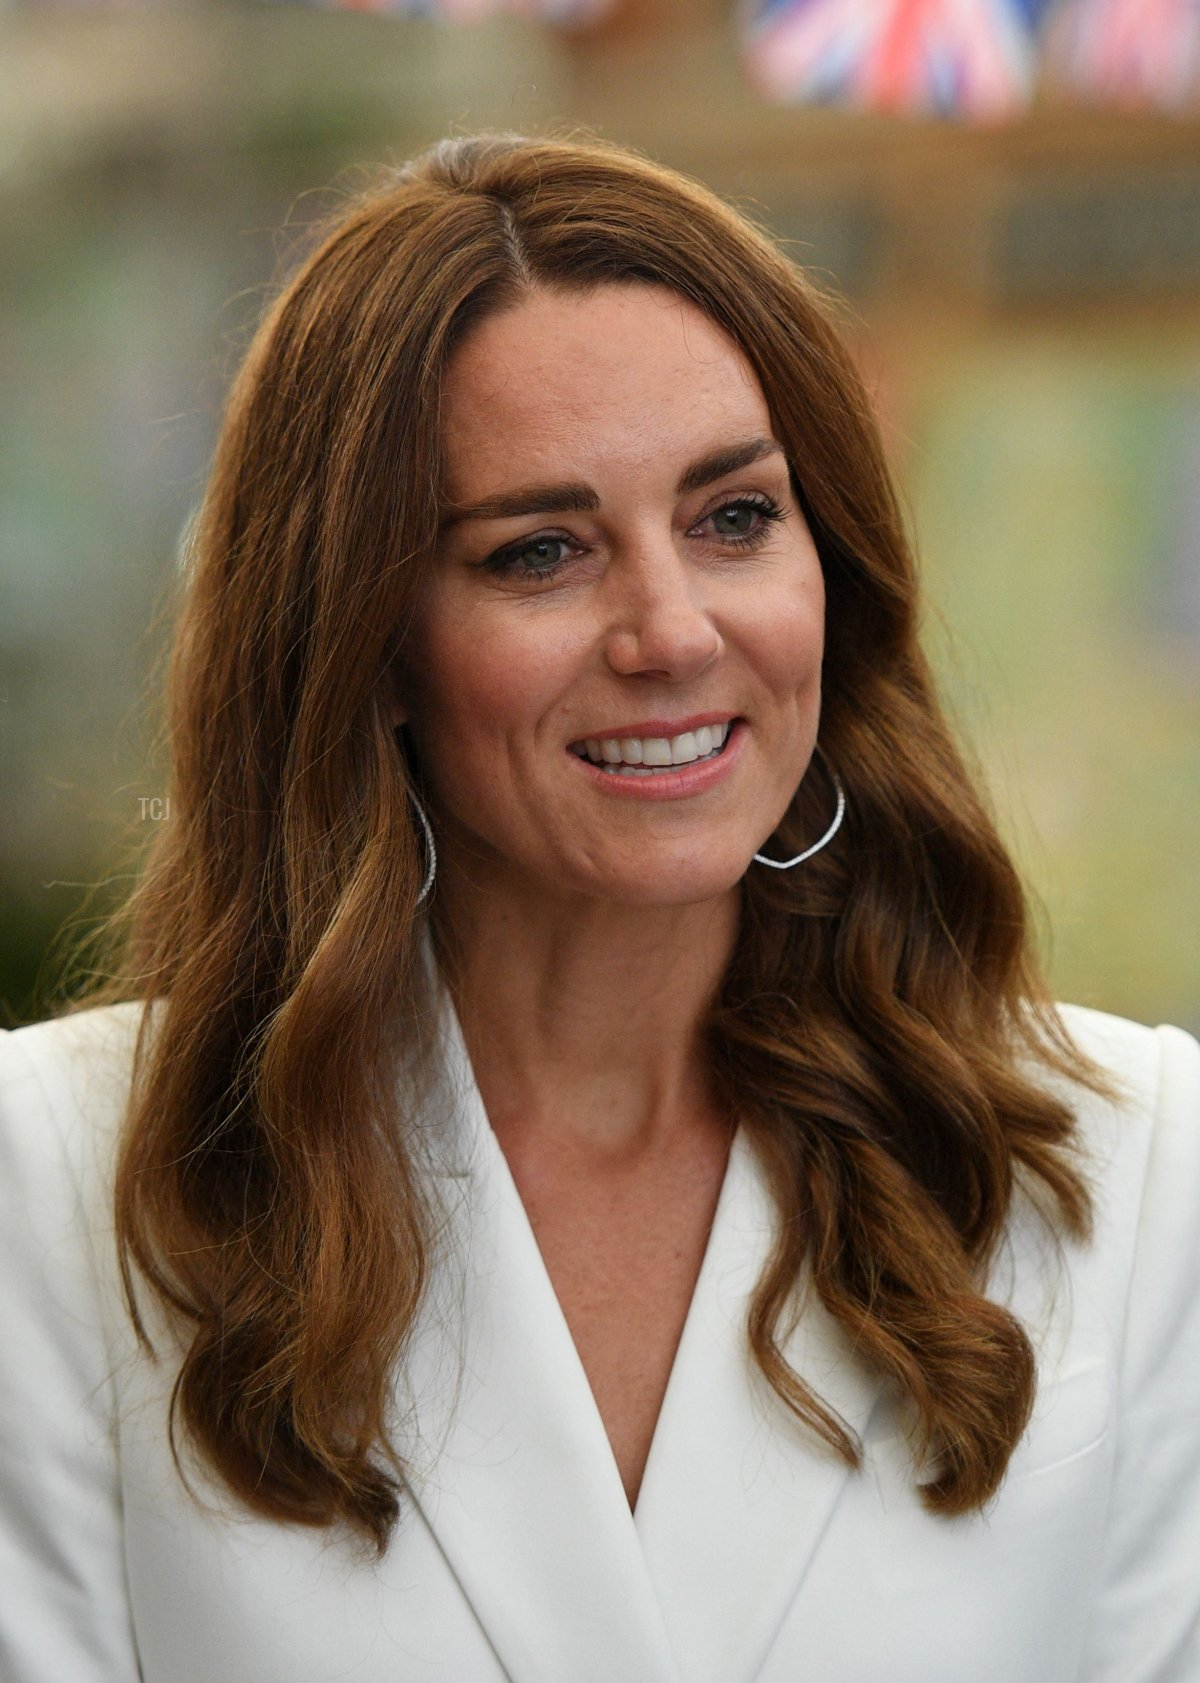 Britain's Catherine, Duchess of Cambridge, smiles as she attends an event with Britain's Queen Elizabeth II in celebration of The Big Lunch initiative at The Eden Project, near St Austell in south west England on June 11, 2021